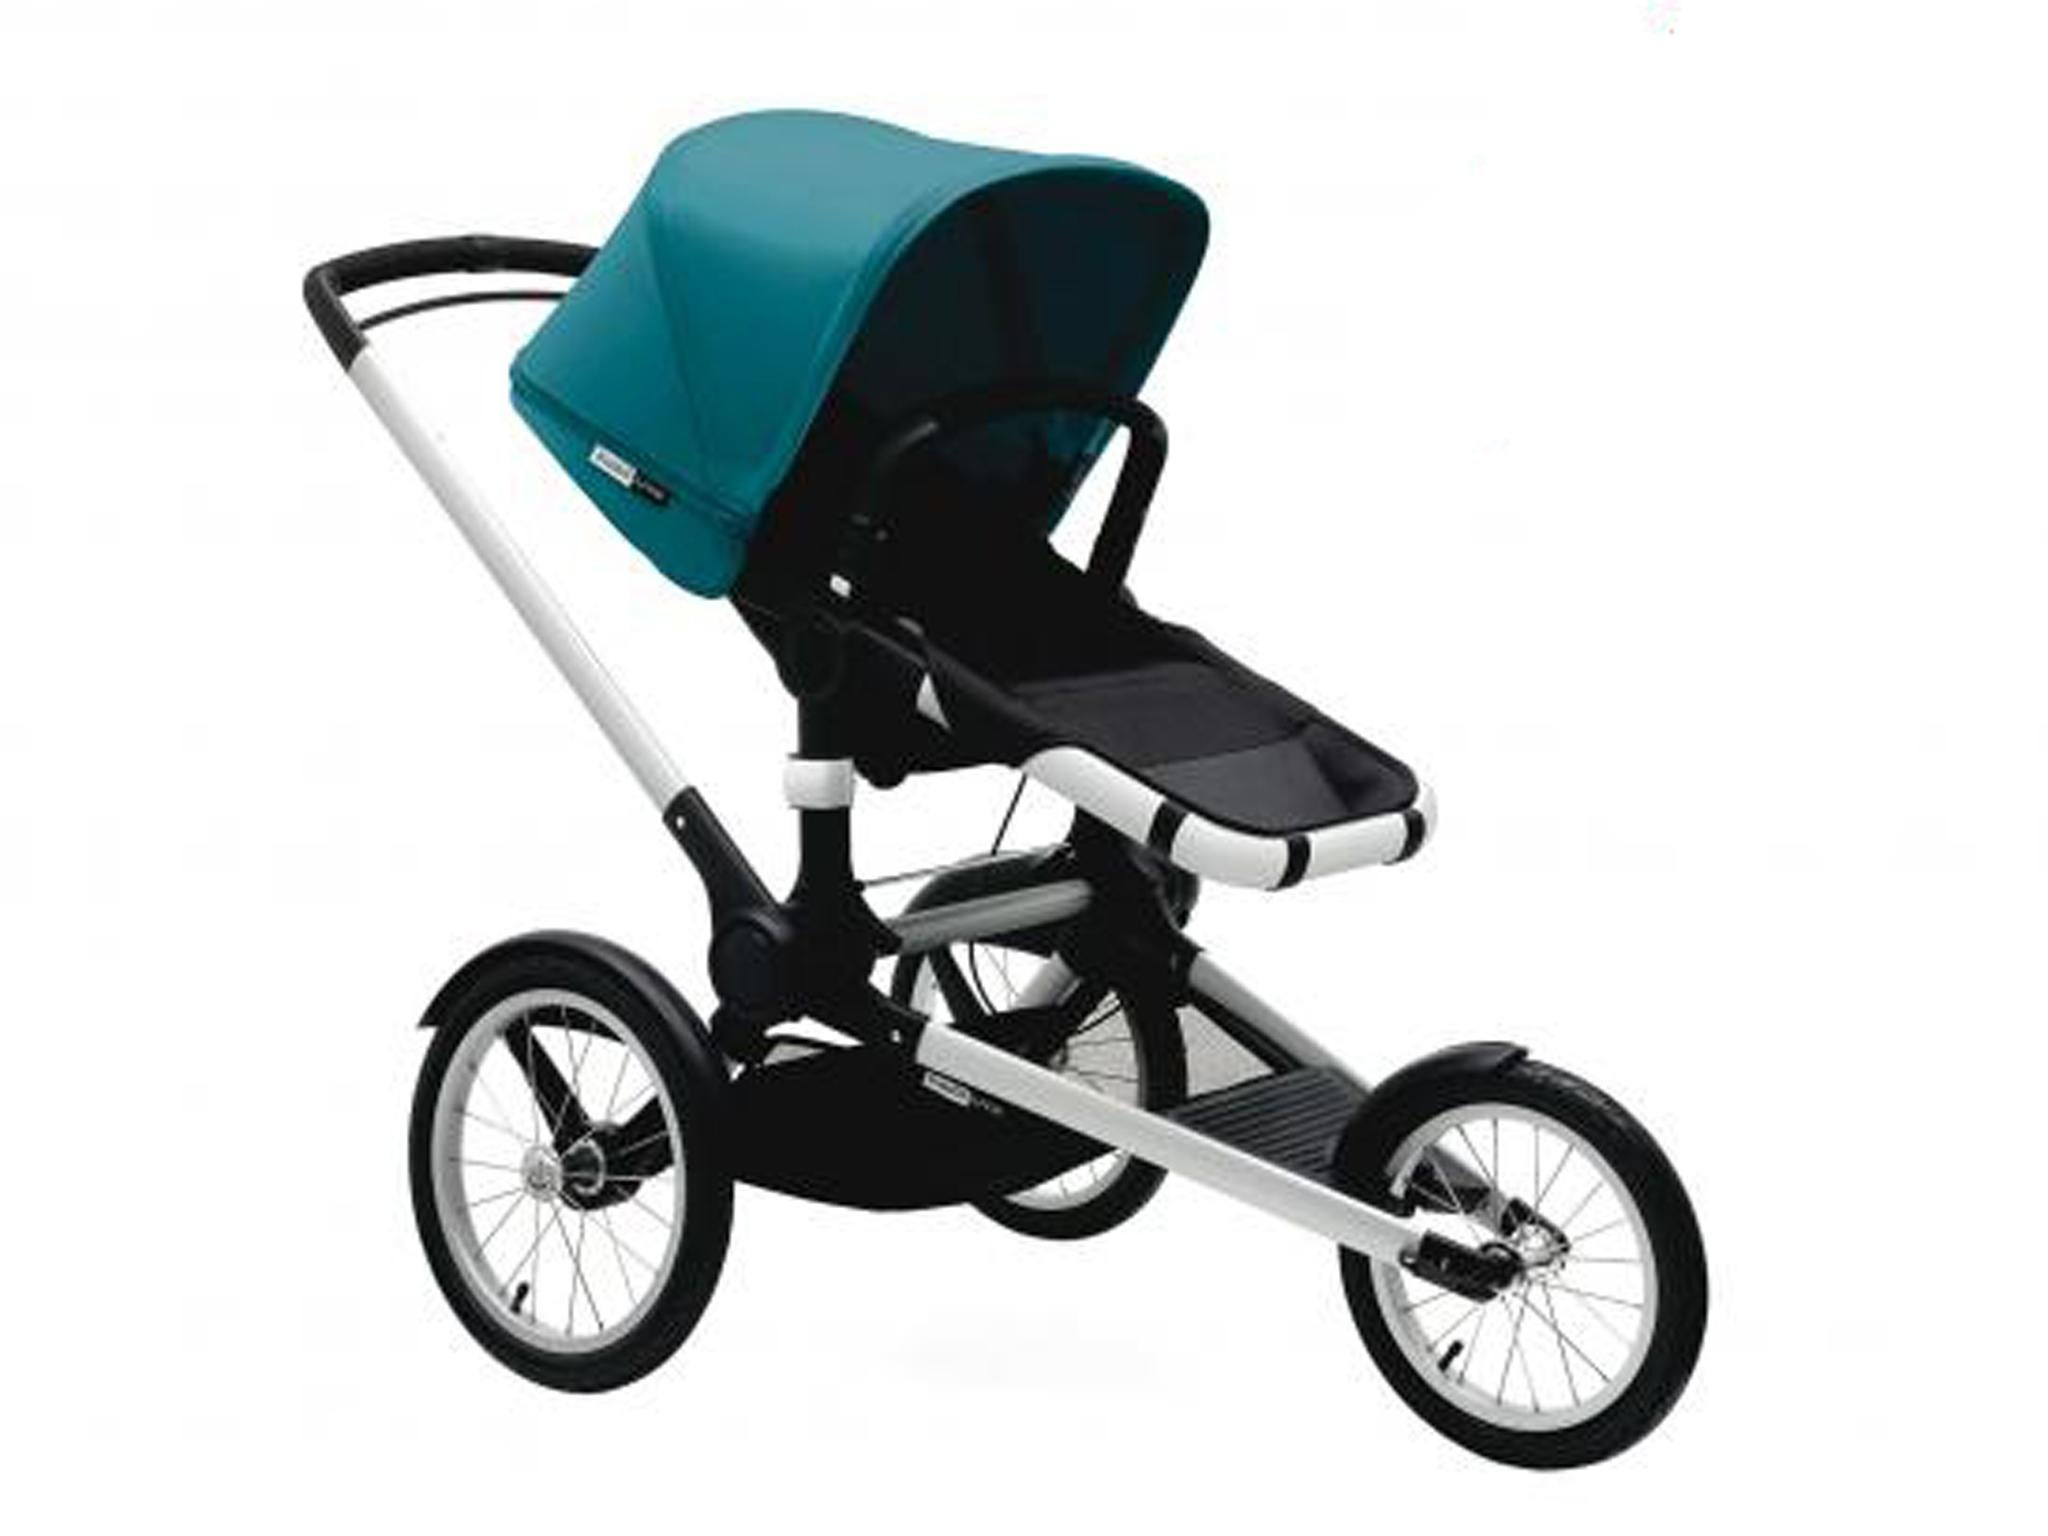 Pushchairs buying guide: What to consider before you invest   The ...